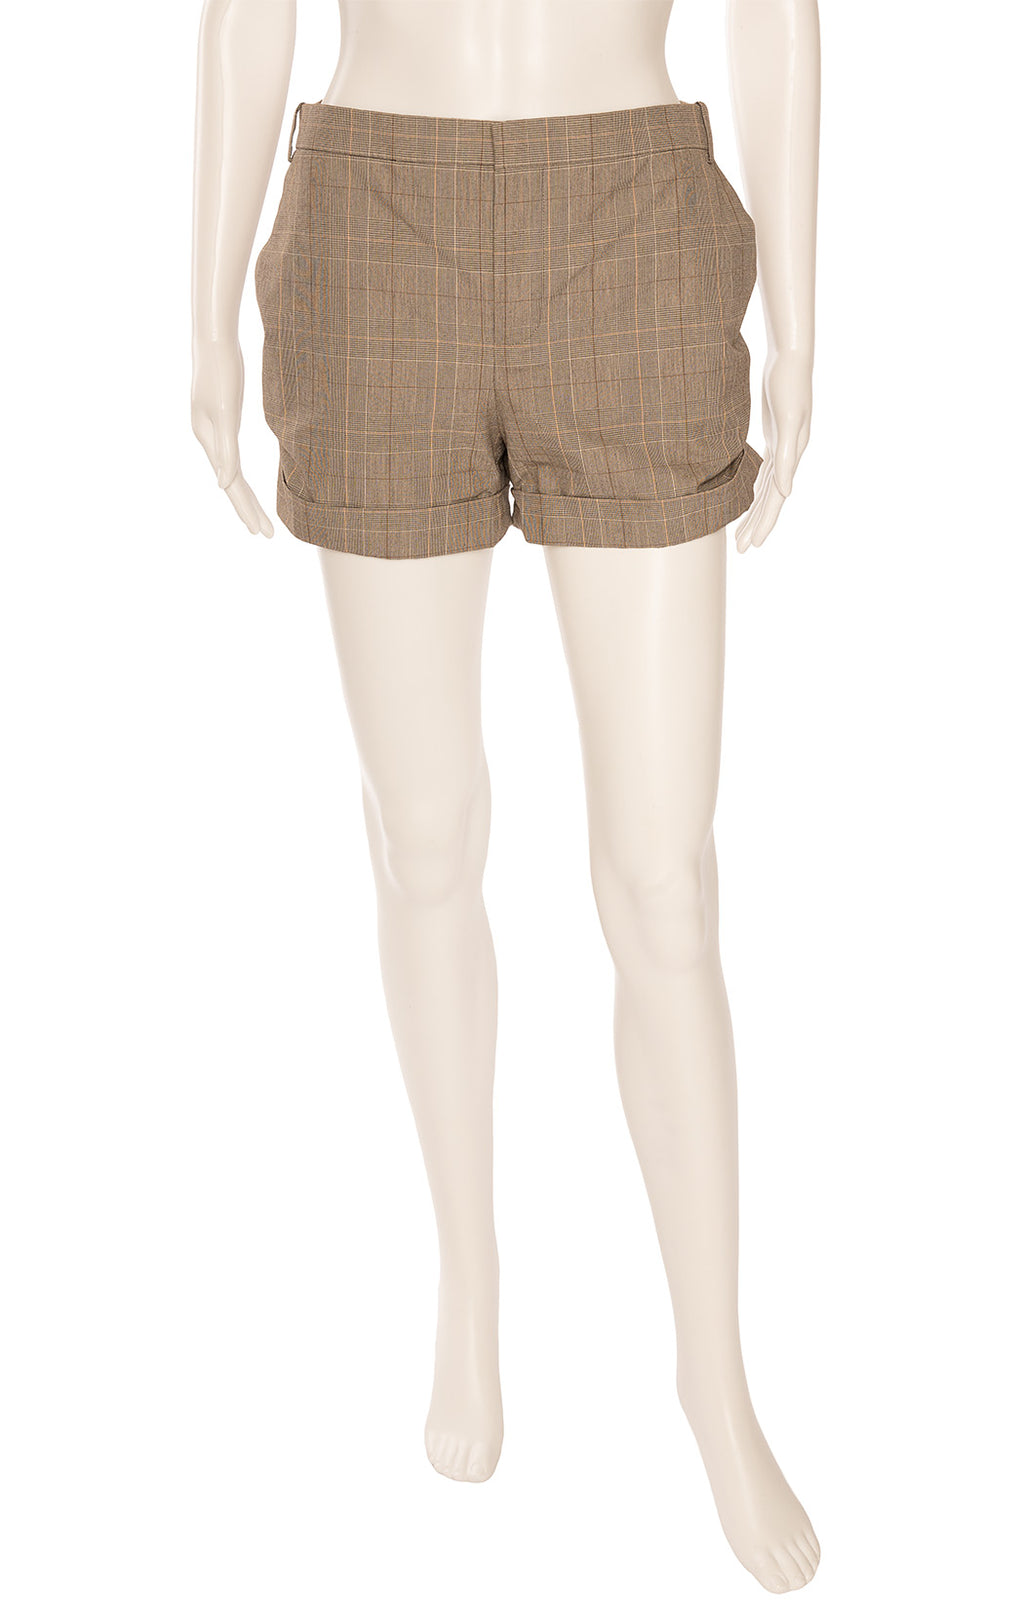 Brown plaid short shorts with front zipper, side ruching and back pockets